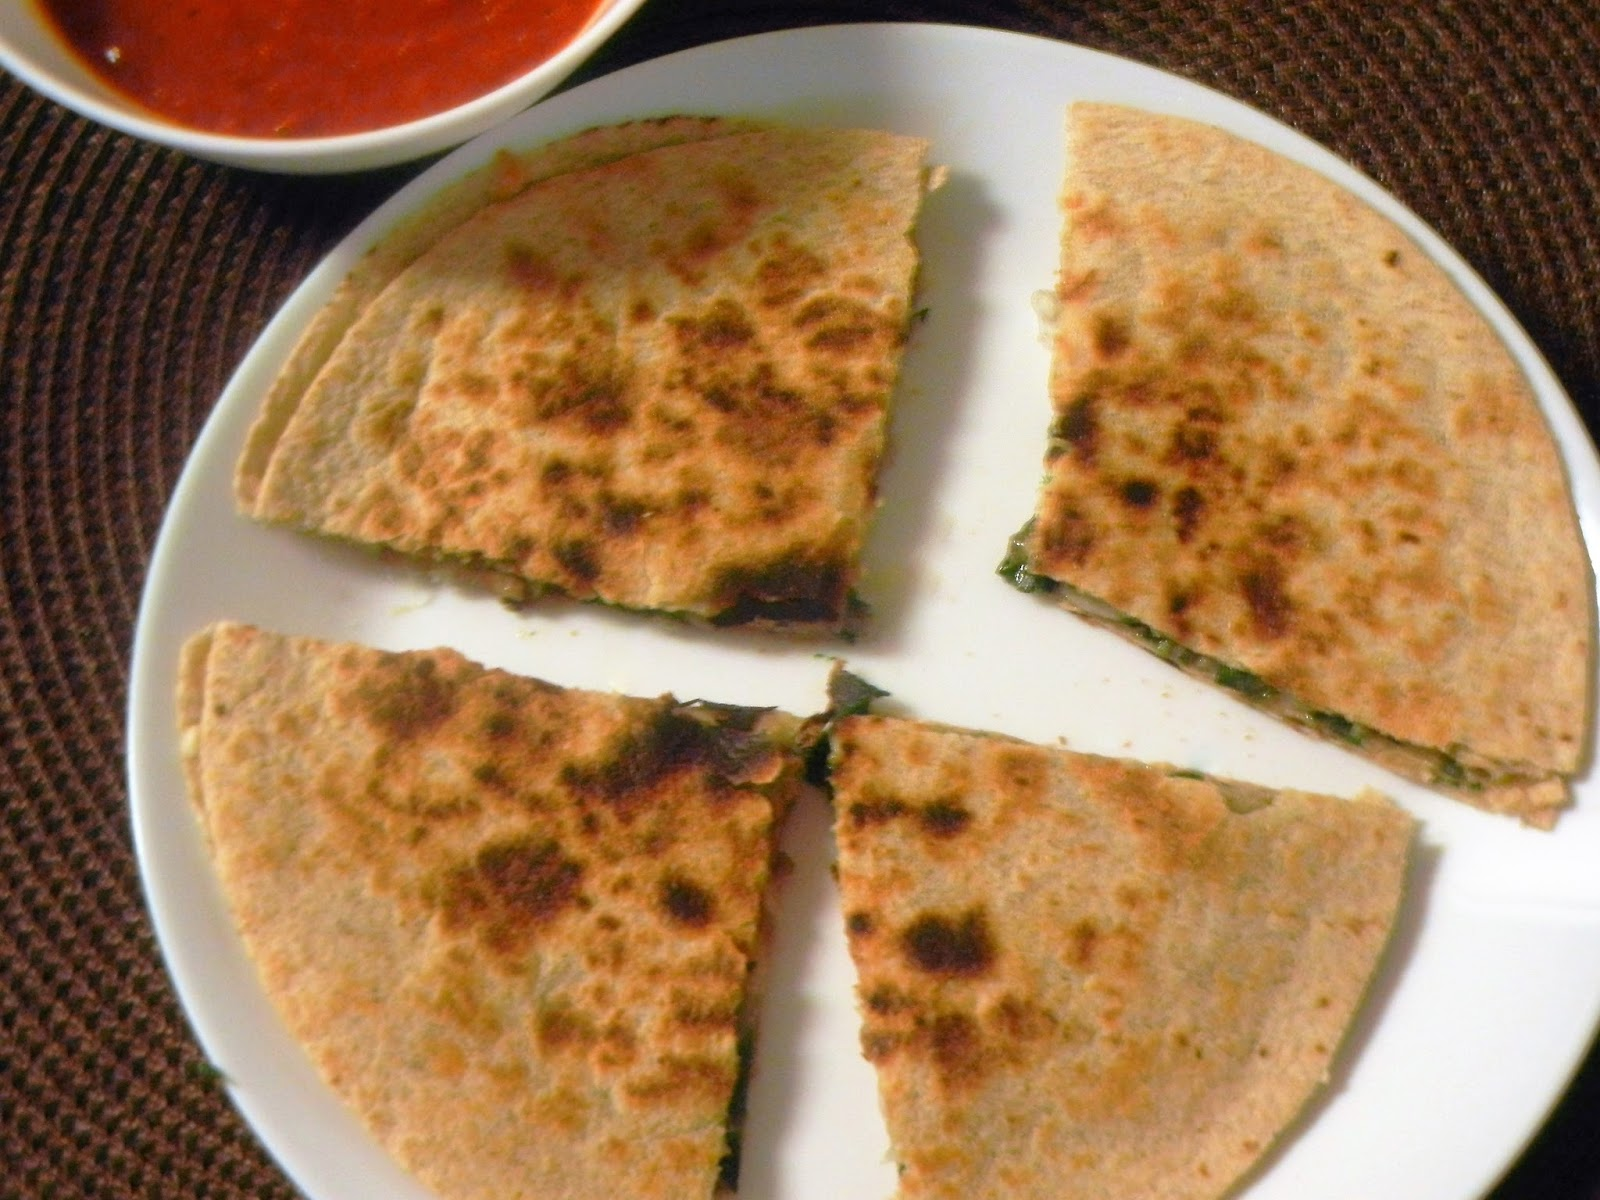 Gitas kitchen a blog for indian diabetic recipes and healthy recipes spinach and mushroom quesadillas with whole wheat tortillas forumfinder